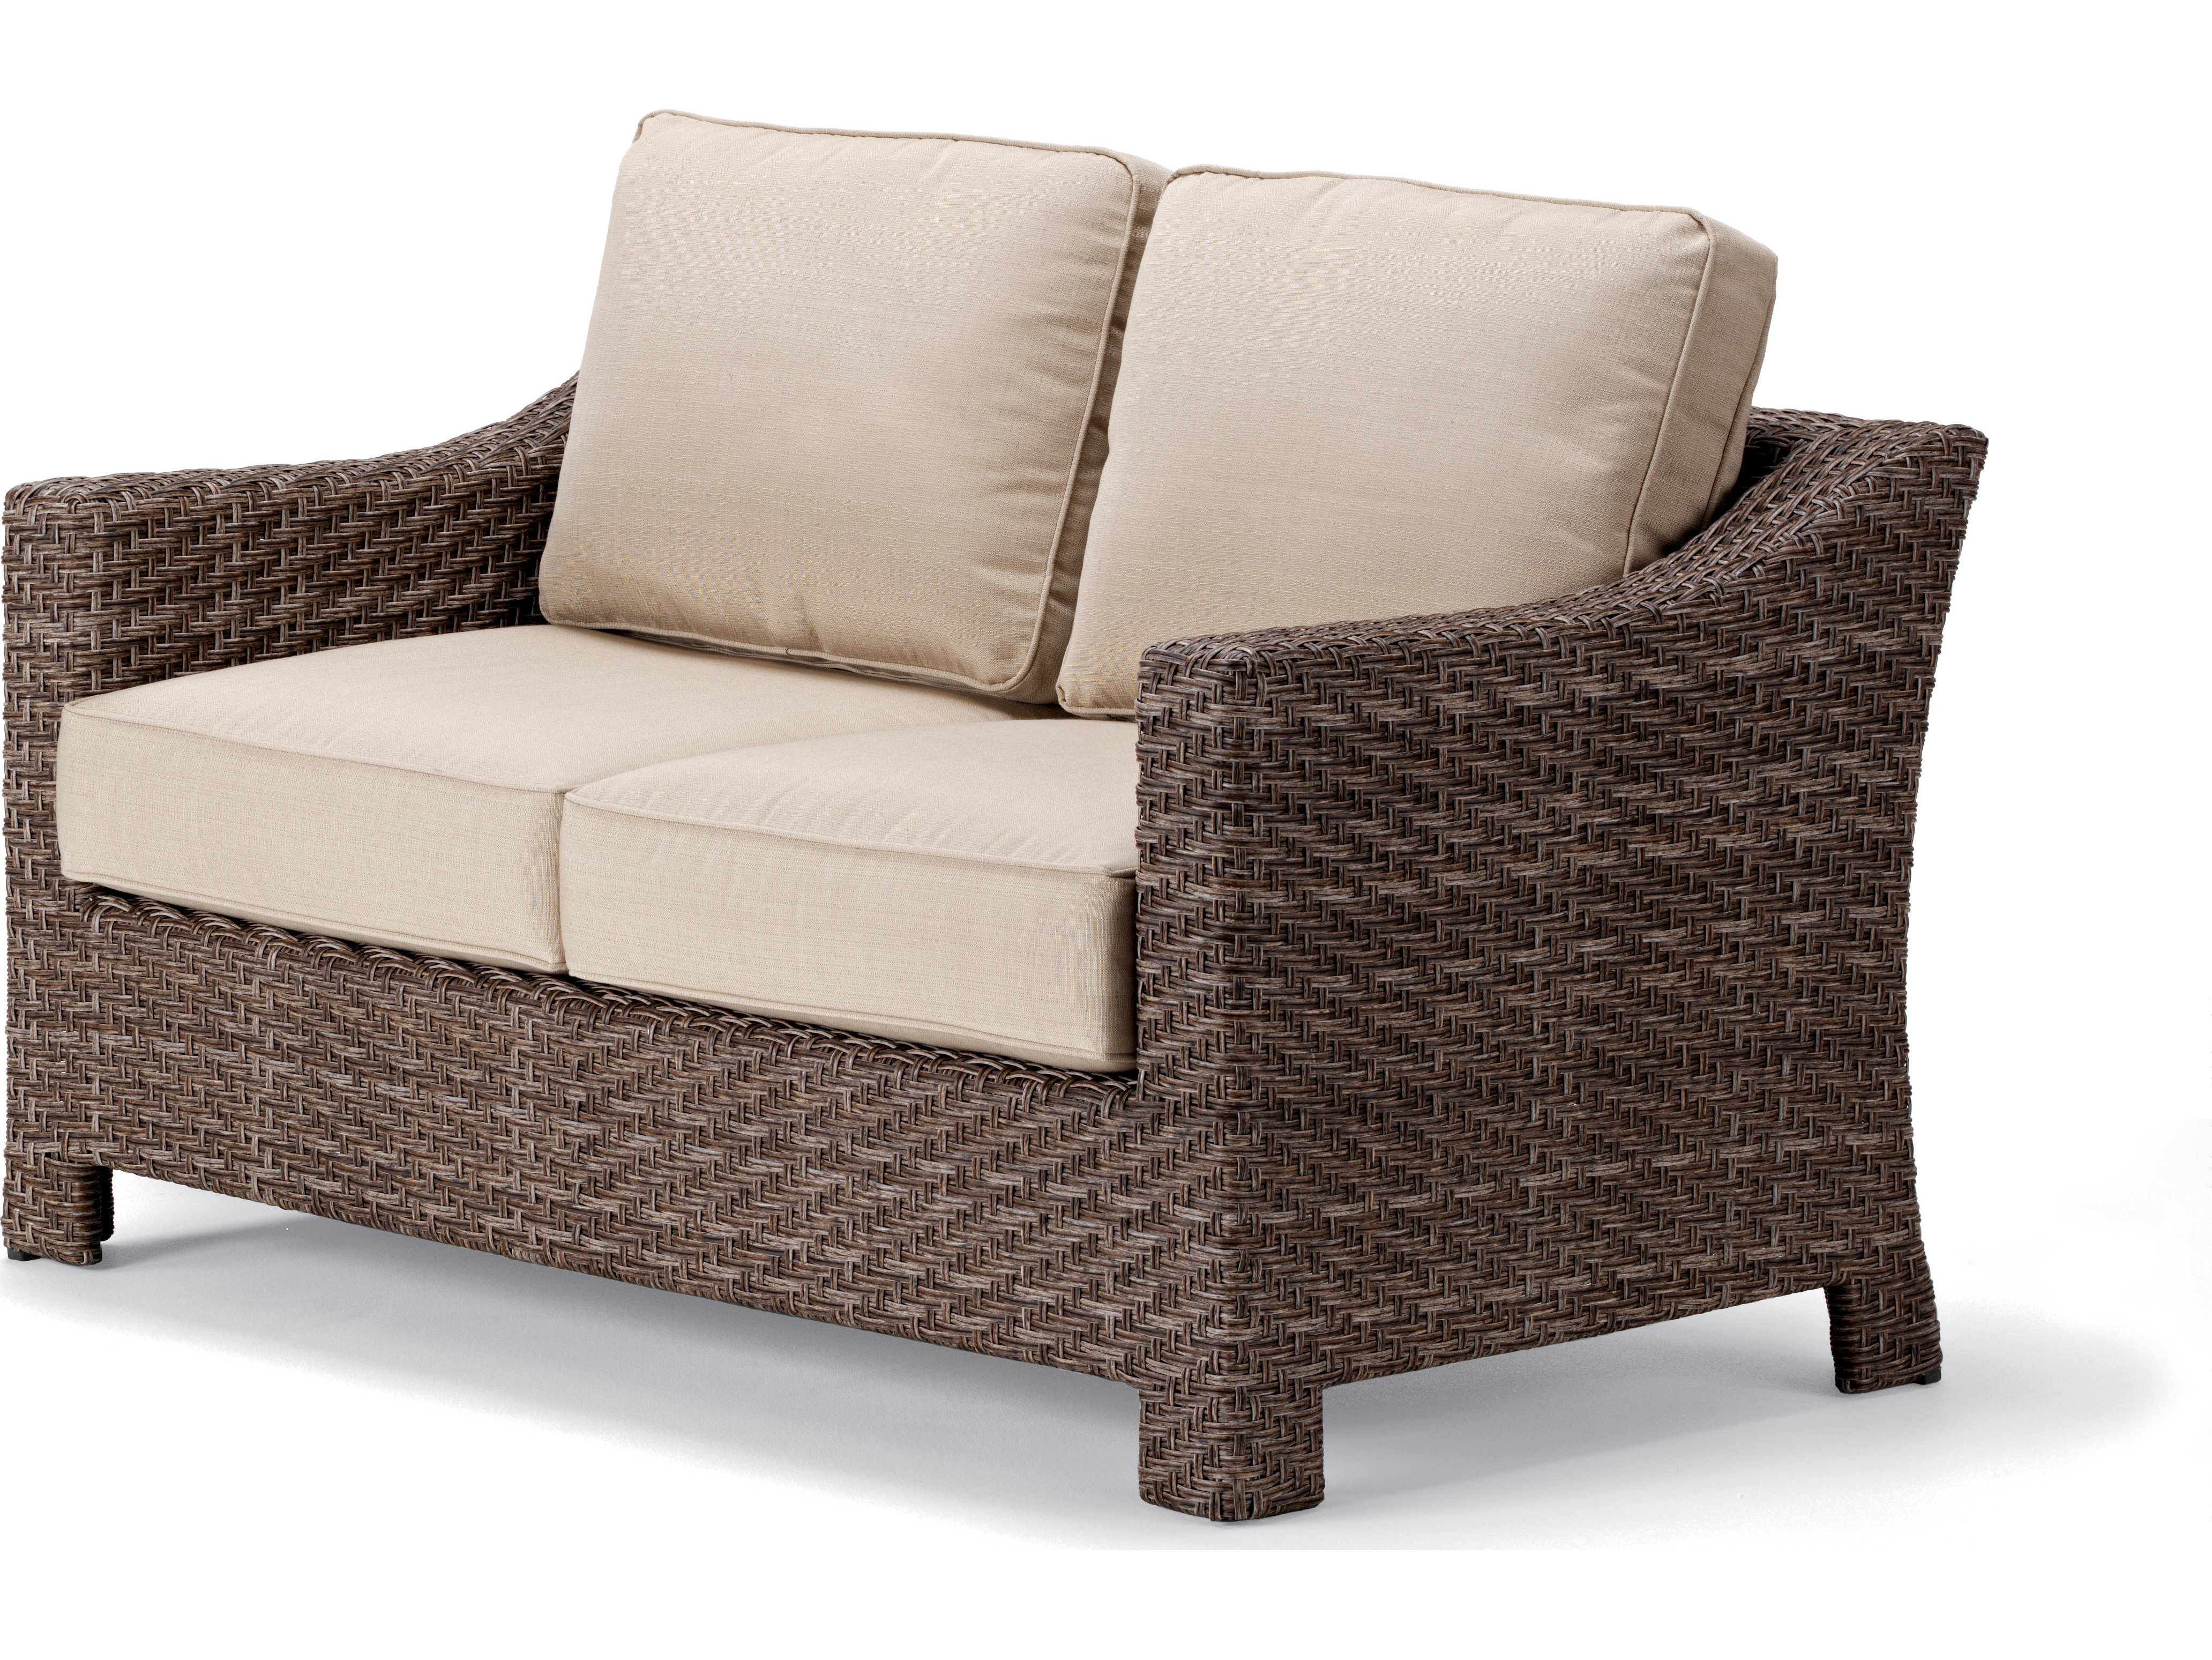 Telescope Casual Lake Shore Wicker Loveseat  2l40. Diy Patio Awning Plans. Quick Patio Deck. Cement Patio With Pergola. Patio Slab Layout Designs. El Patio Restaurant Rockville Md. Patio Contractors Charlotte Nc. Walled Patio Designs. Brick Patio Wall Ideas